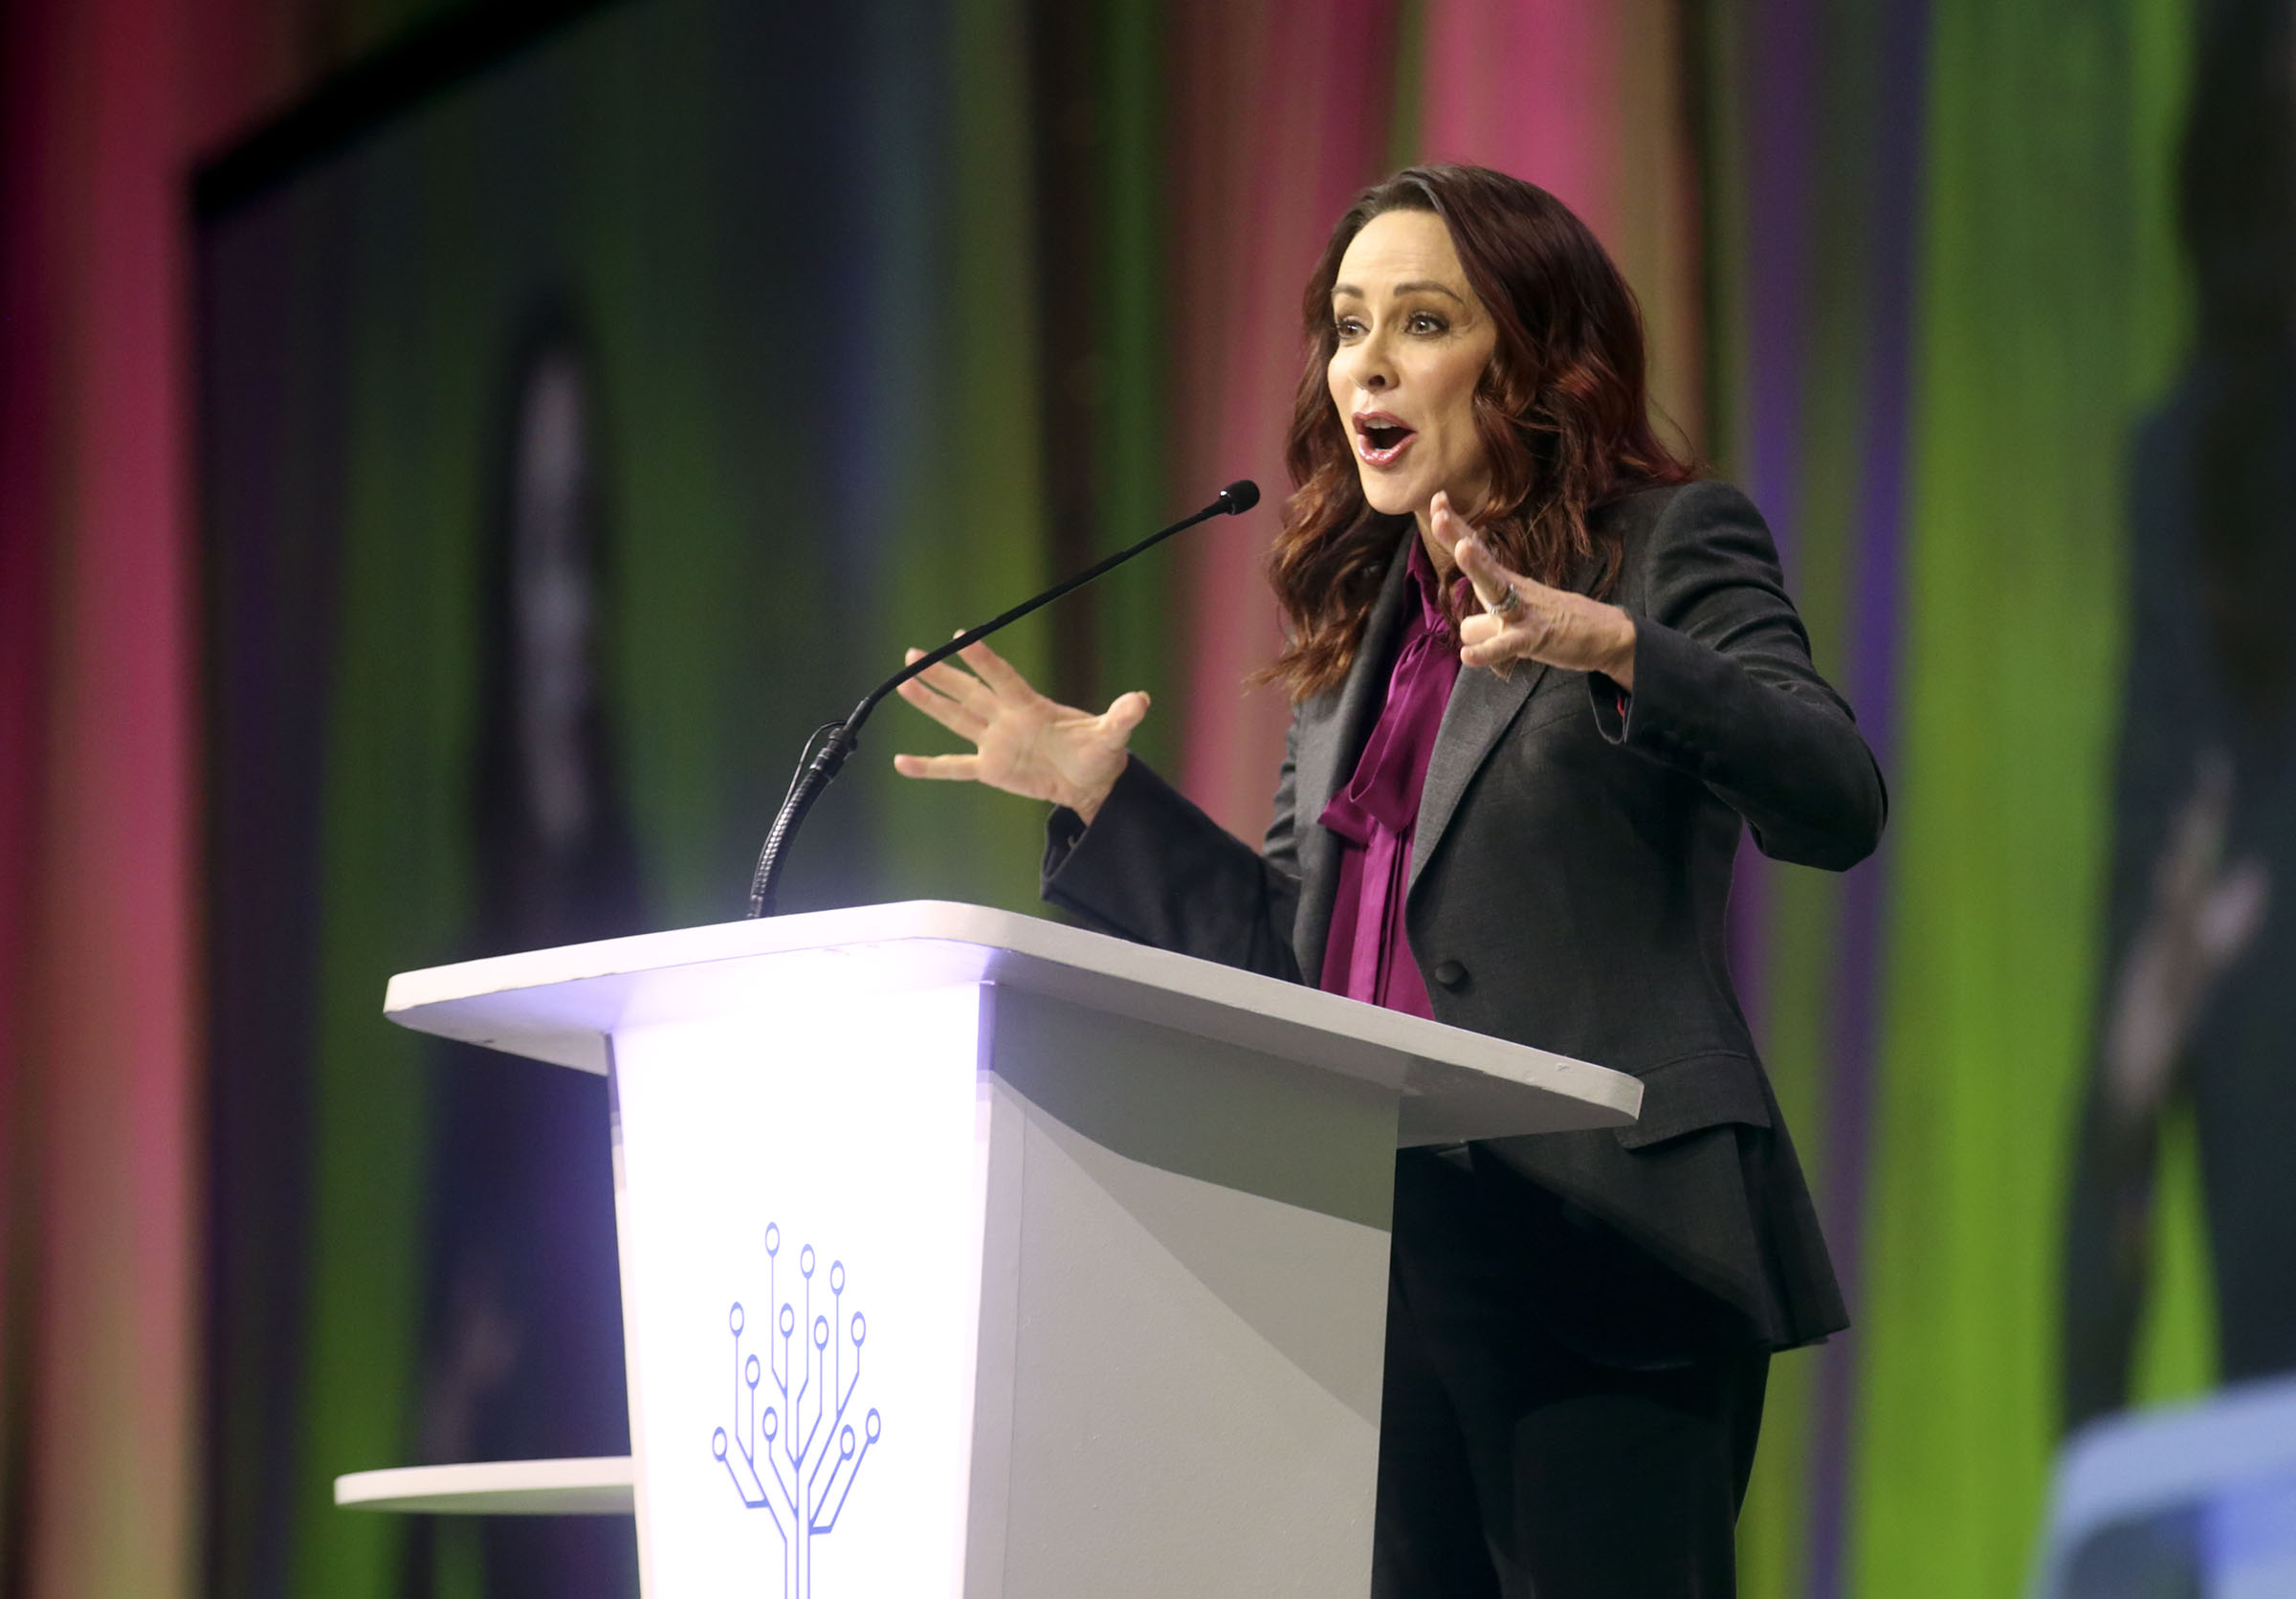 Actress Patricia Heaton gives her keynote speech during RootsTech at the Salt Palace Convention Center in Salt Lake City on Thursday, Feb. 28, 2019.